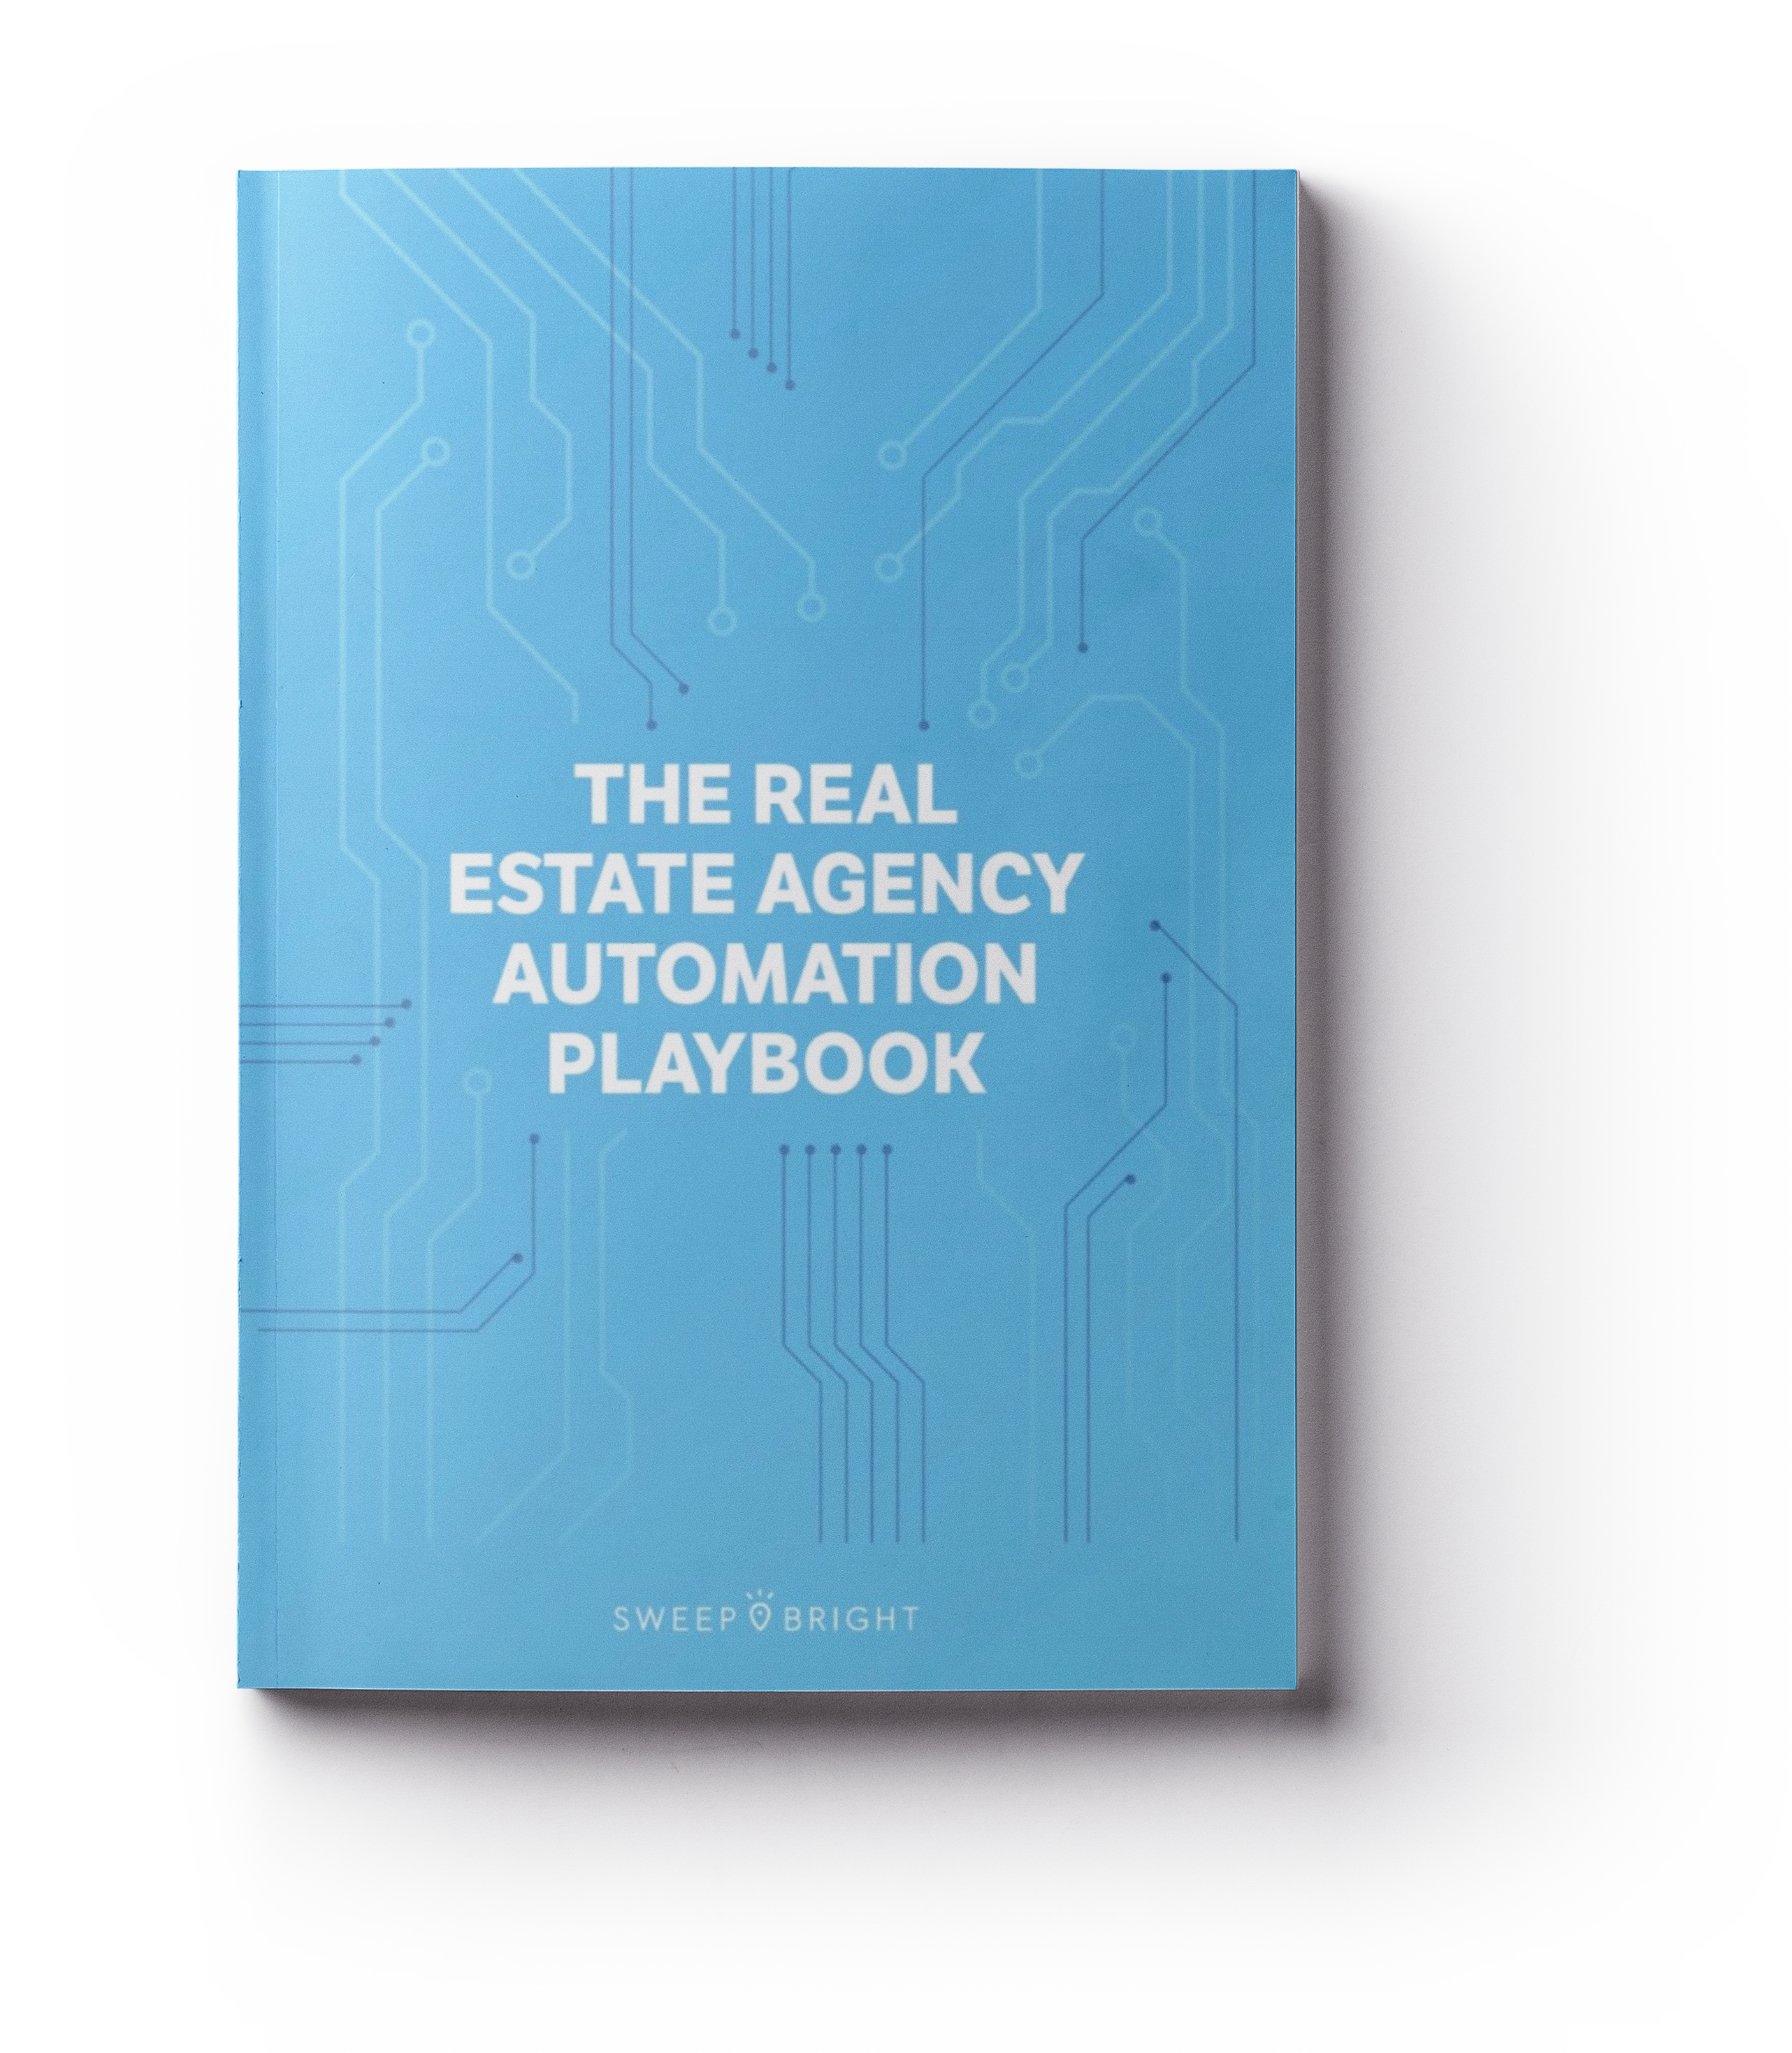 The real estate agency automation playbook